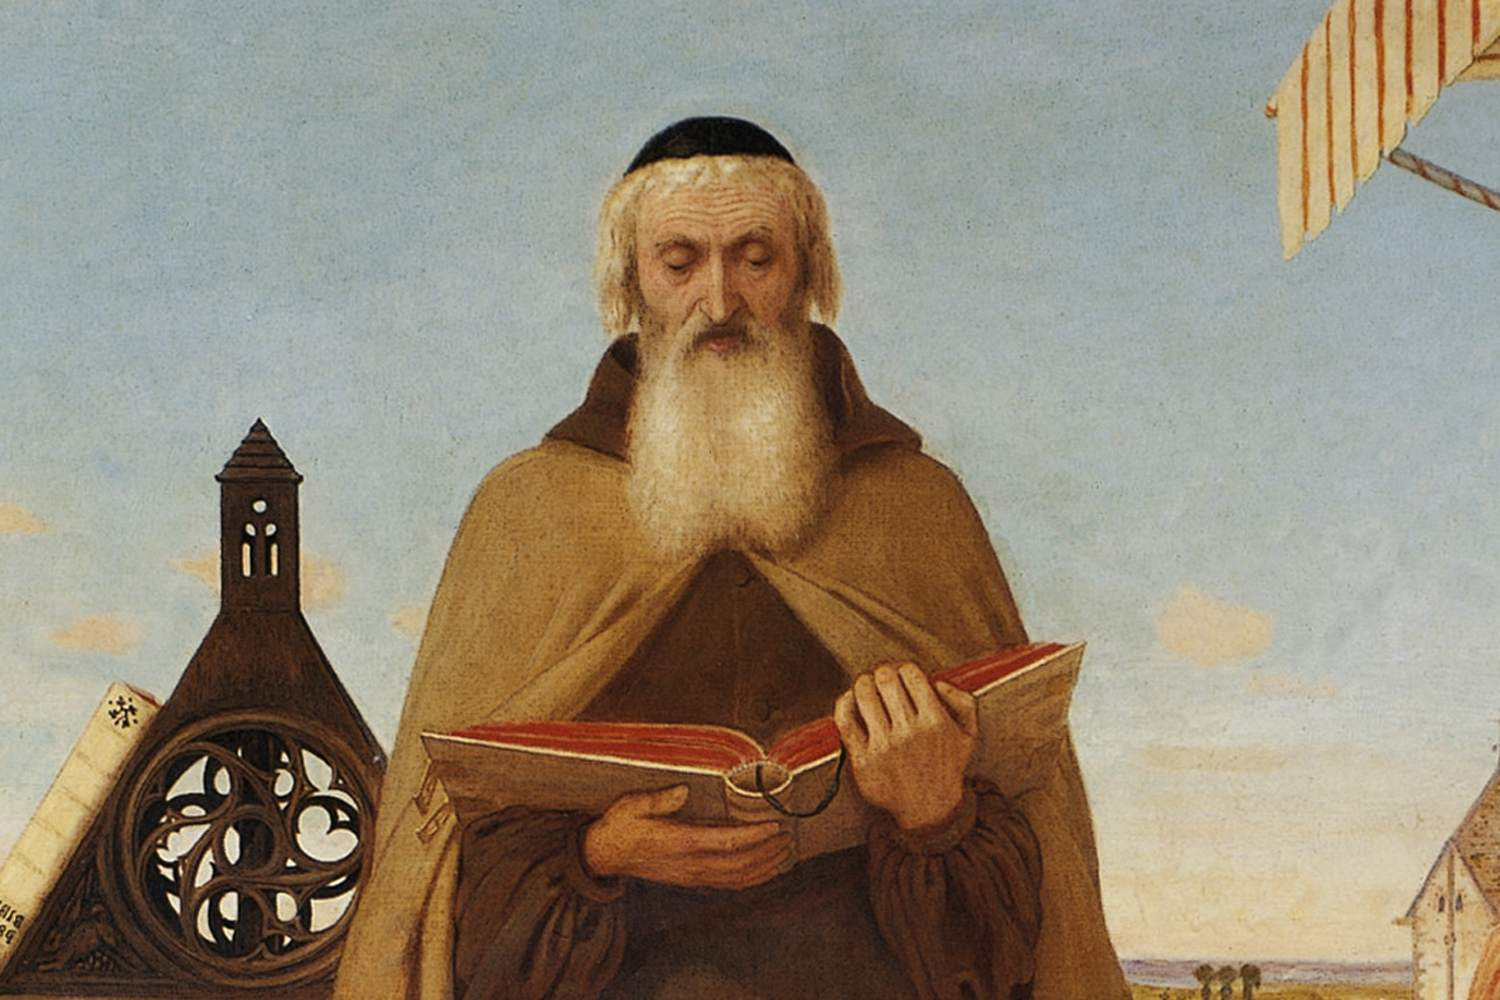 A painting of John Wycliffe (1324 to 1384) reading his translation of the Bible